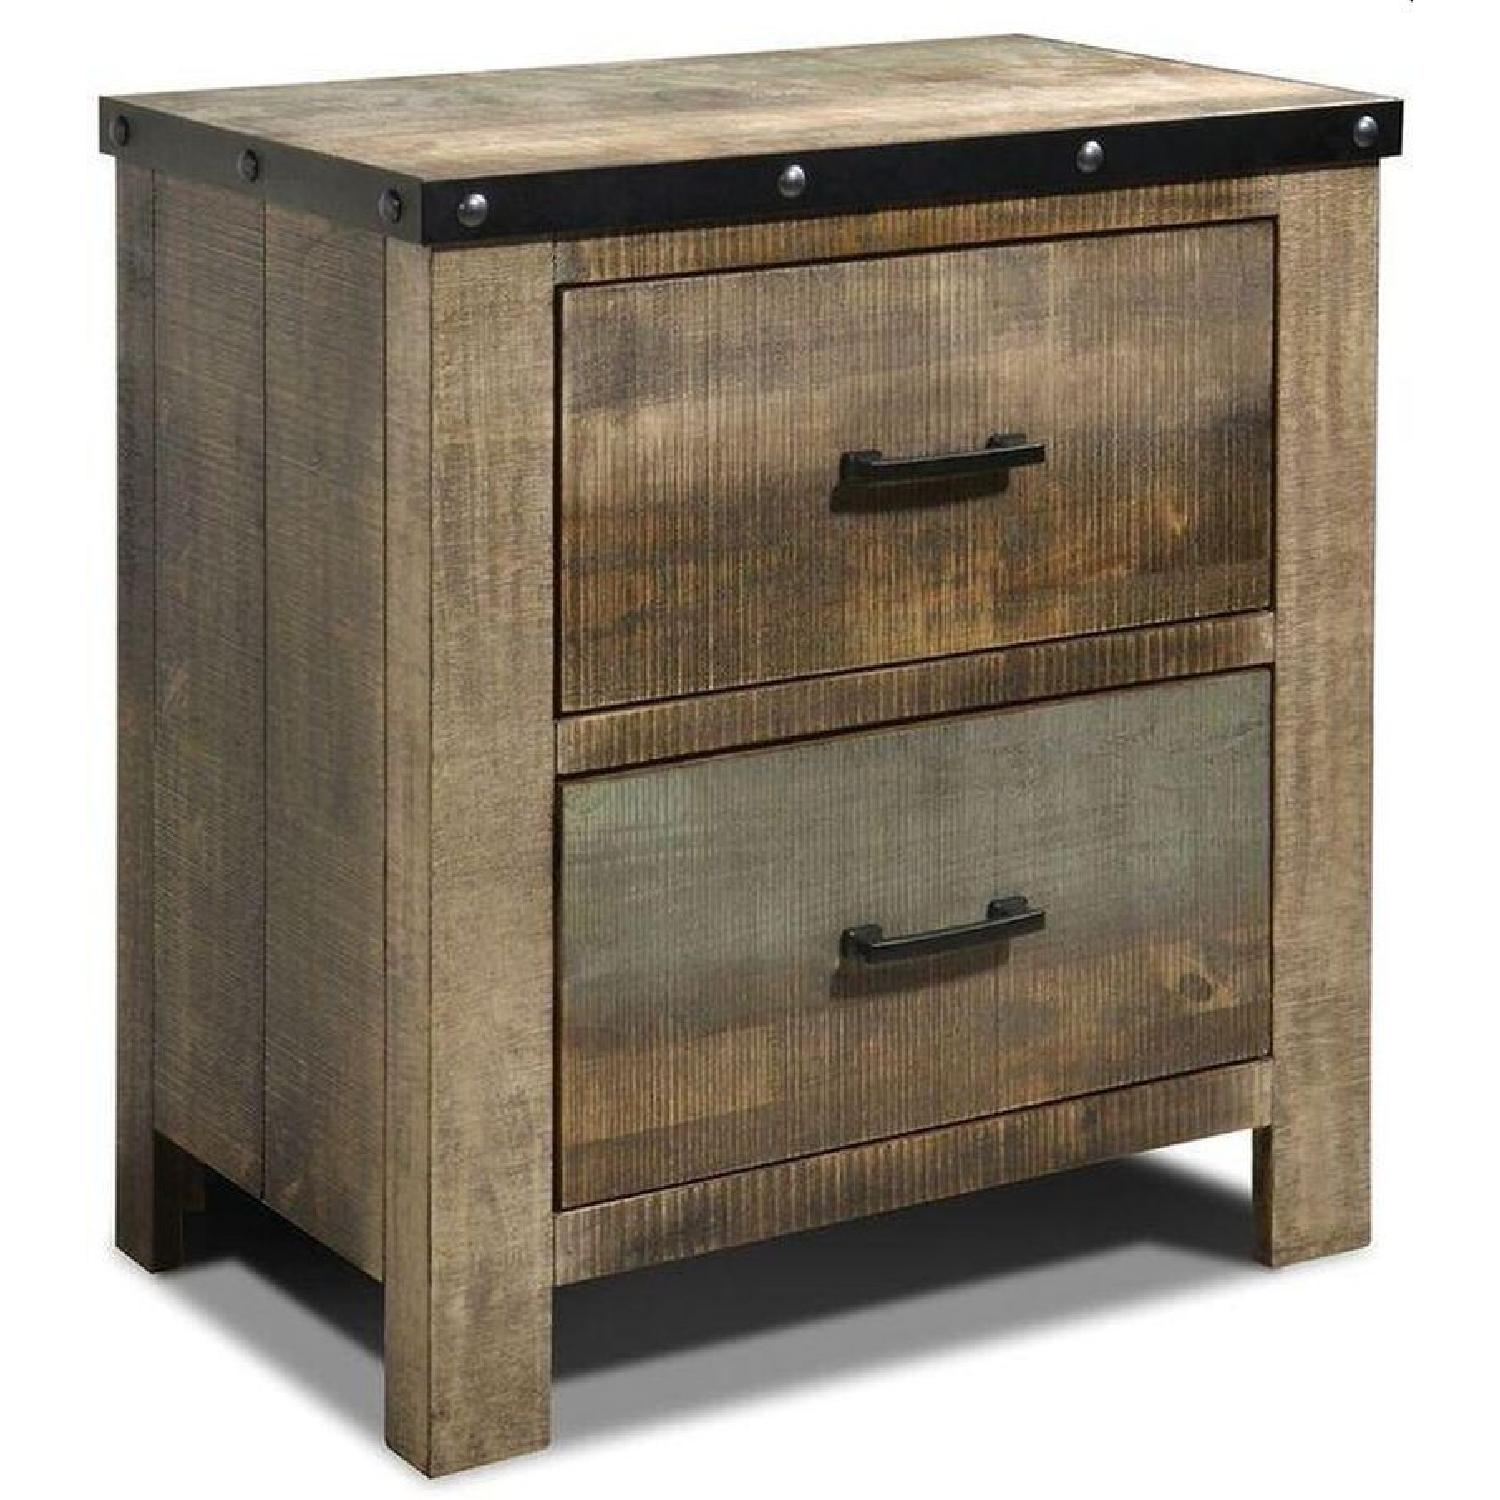 Rustic Style Nightstand in Solid Wood Multi-Tonal Finish - image-0